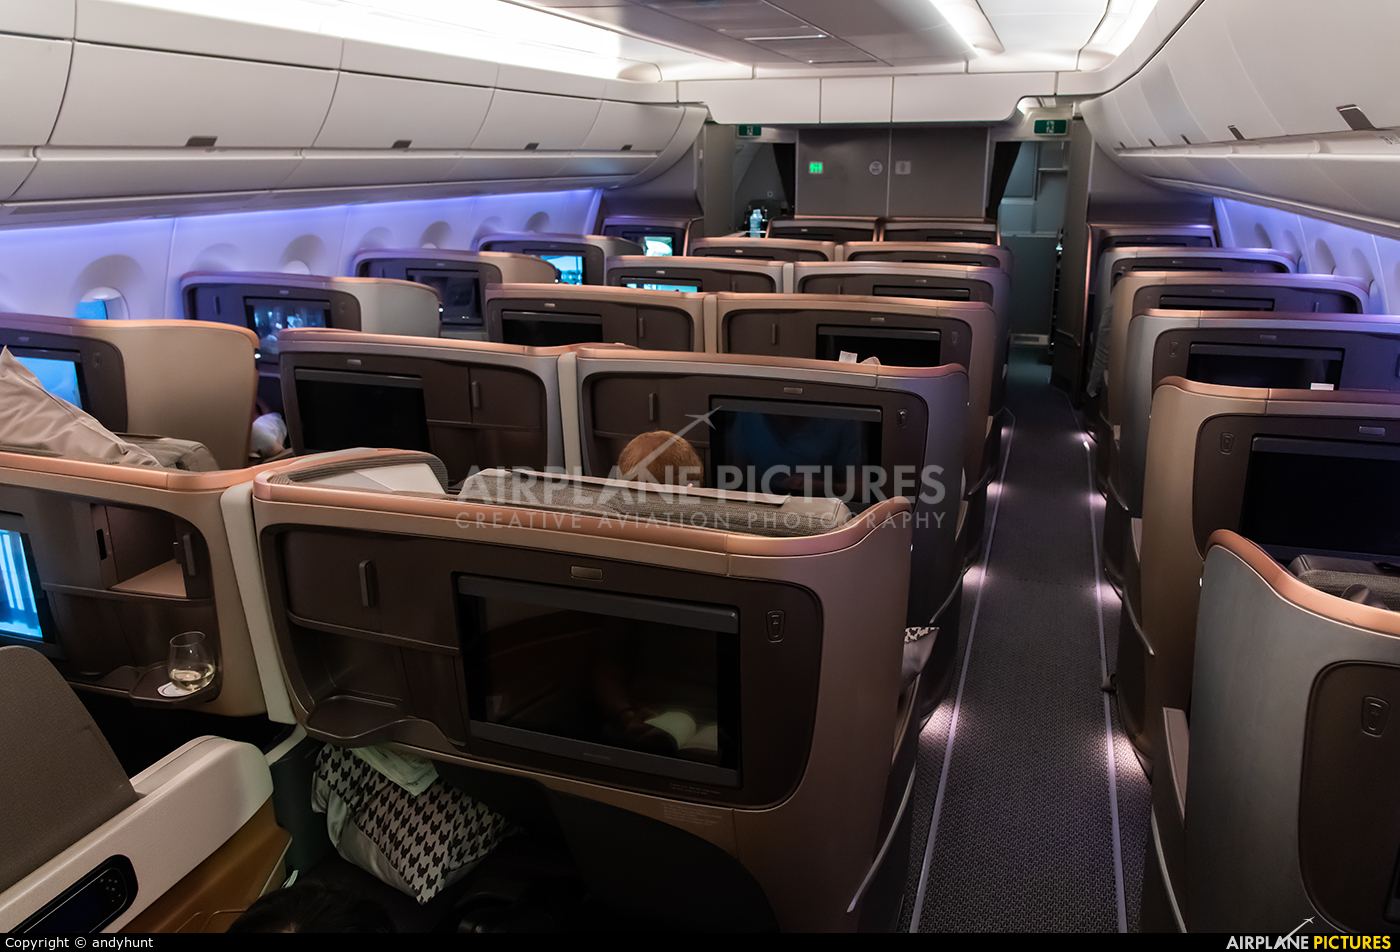 Singapore Airlines 9V-SMJ aircraft at In Flight - International